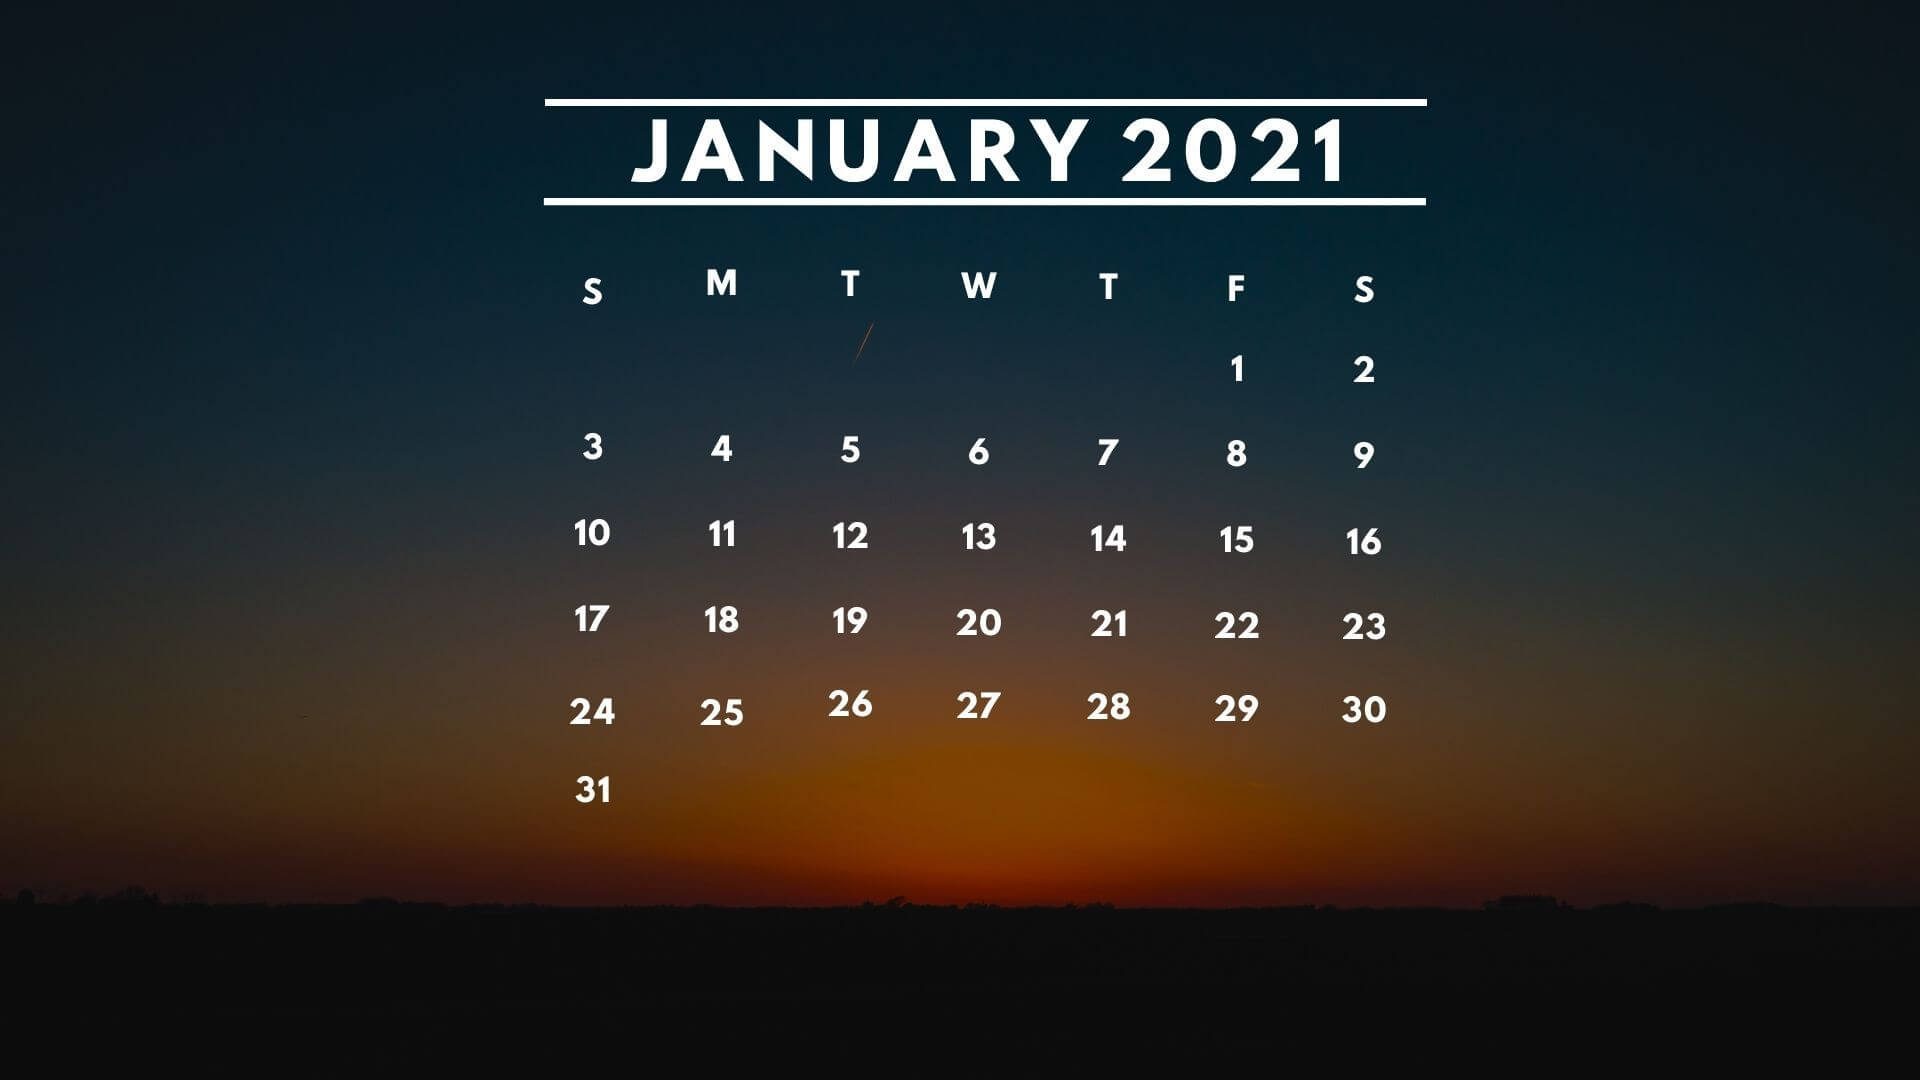 January 2021 Calendar Wallpaper